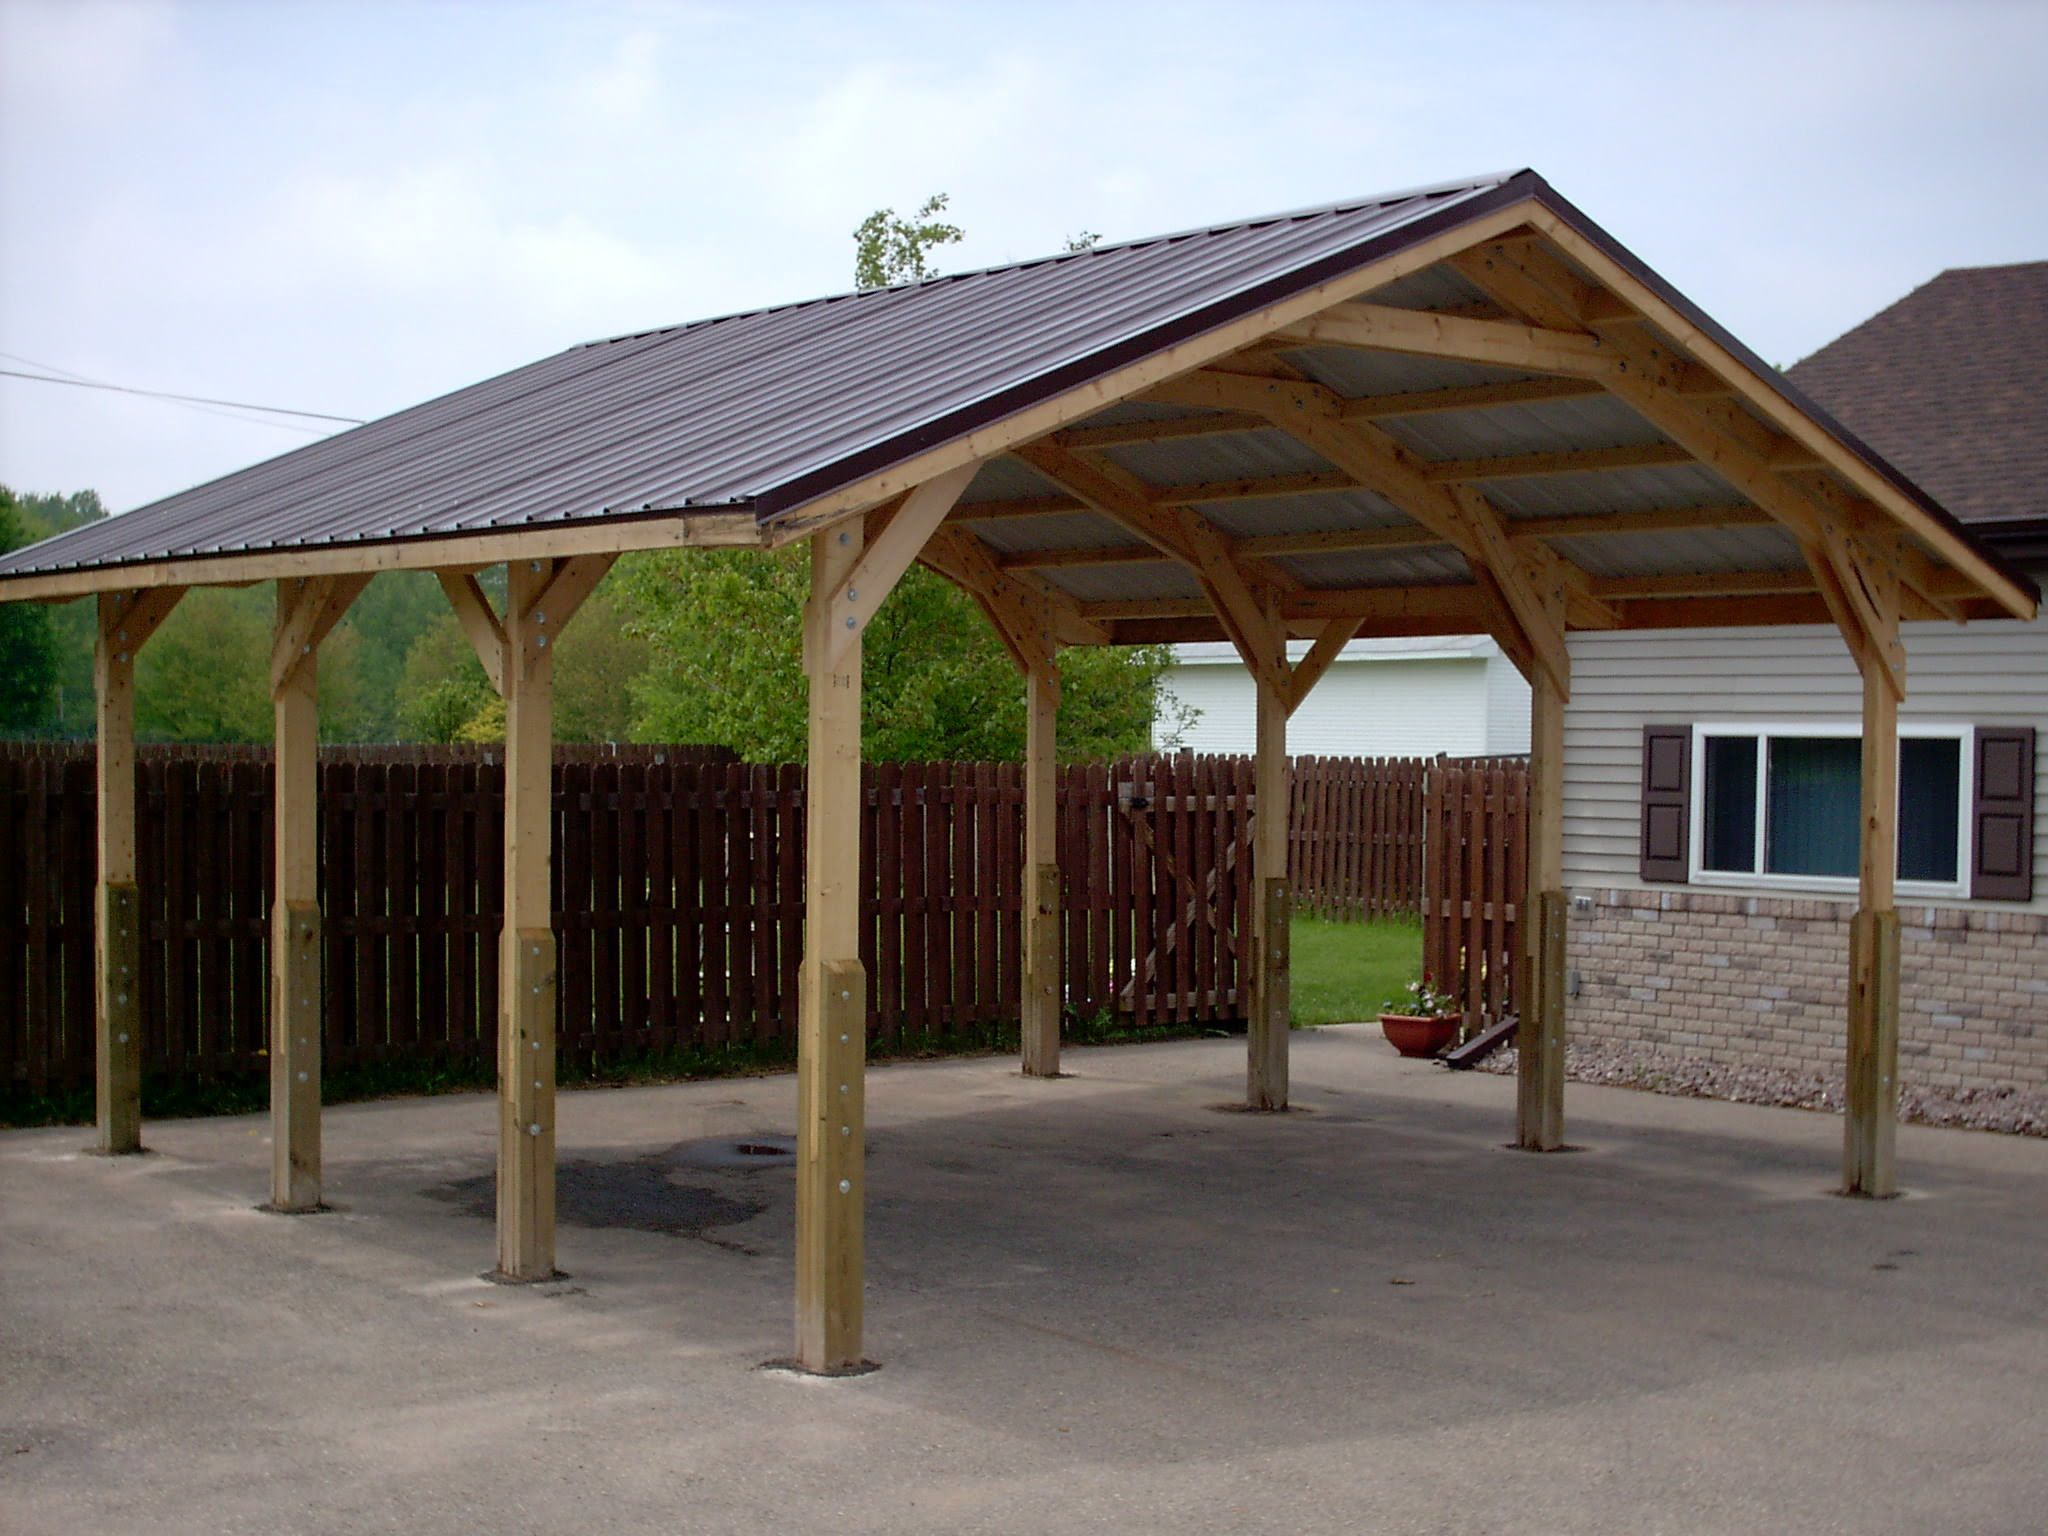 Car port shawanocarport wayneofbowler car ports for Front porch kits for sale